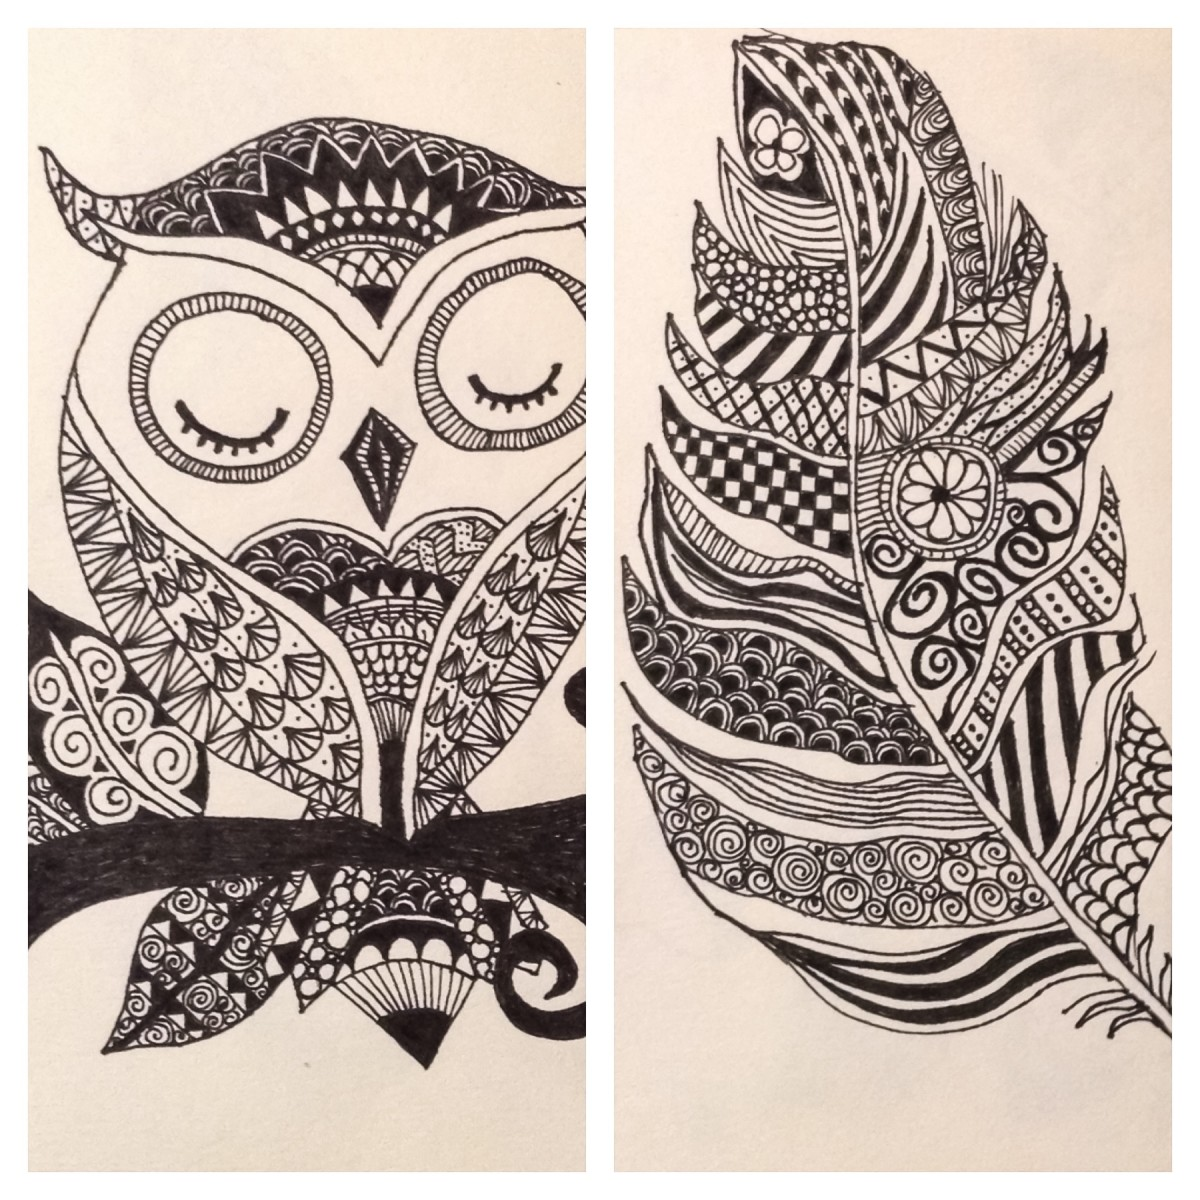 Examples of my Zentangle art (inspired by online designs)